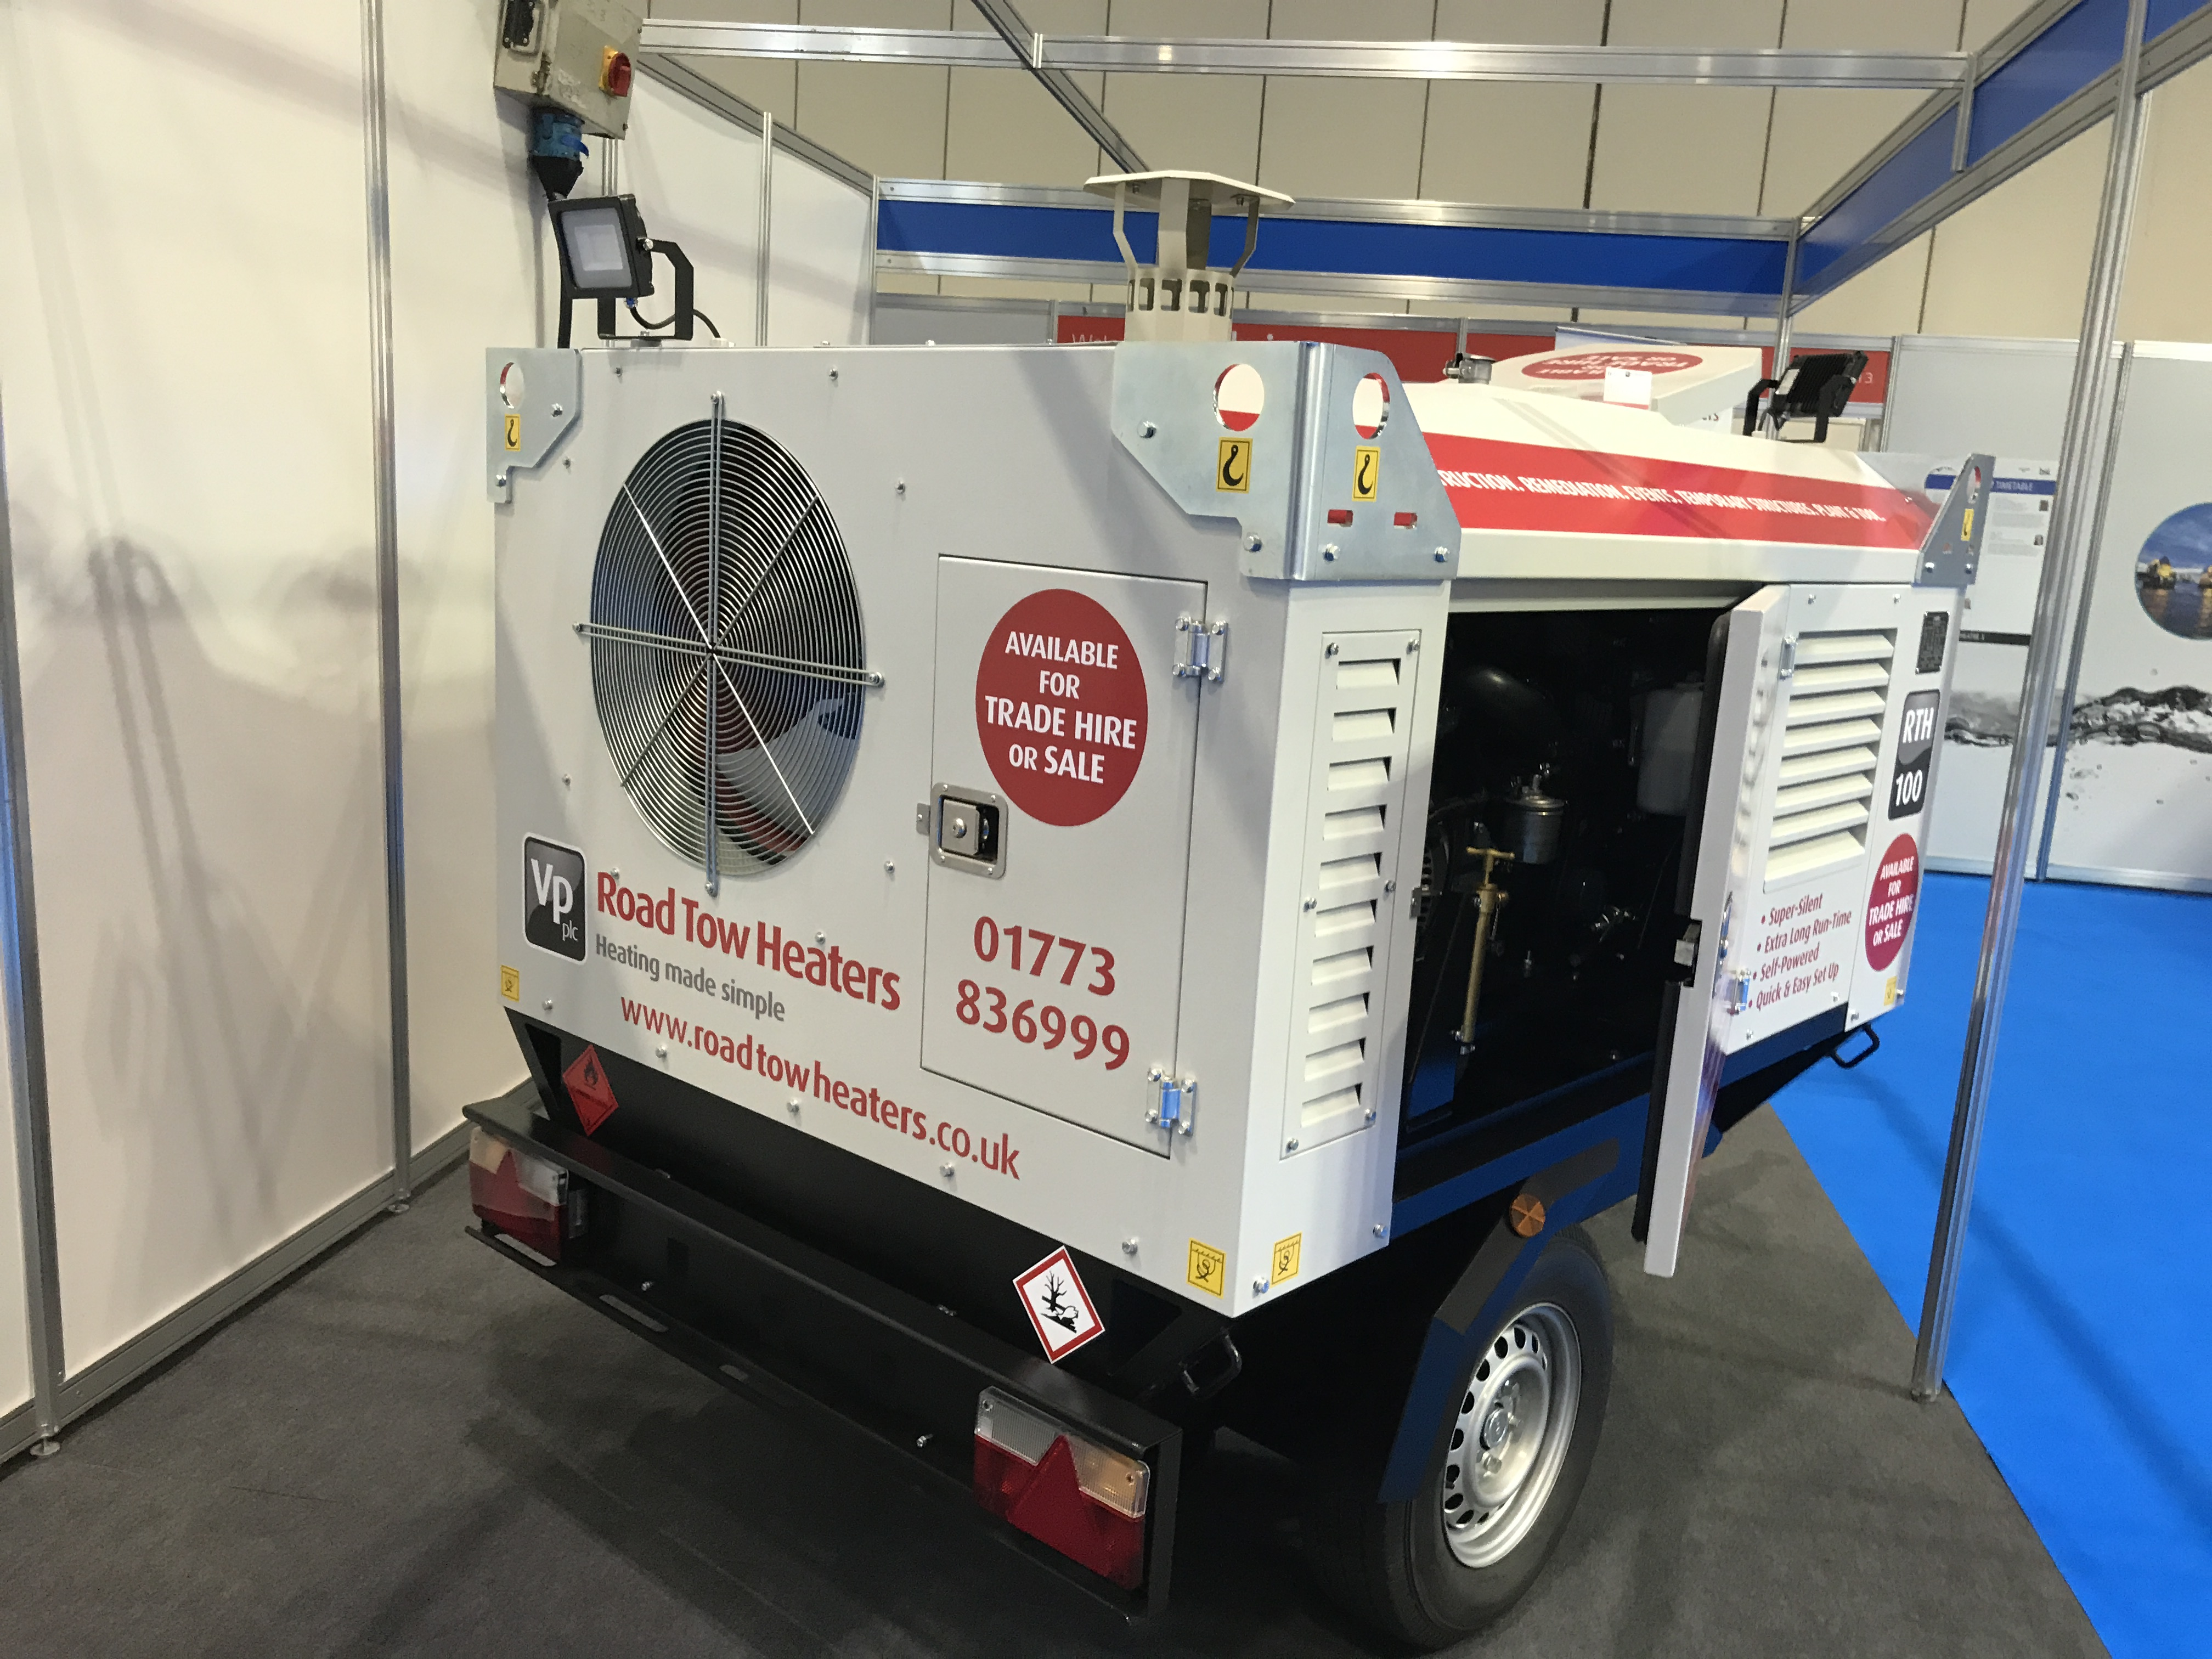 Arcotherm RT110 road tow heater prototype launched at Trade Fair & Convention